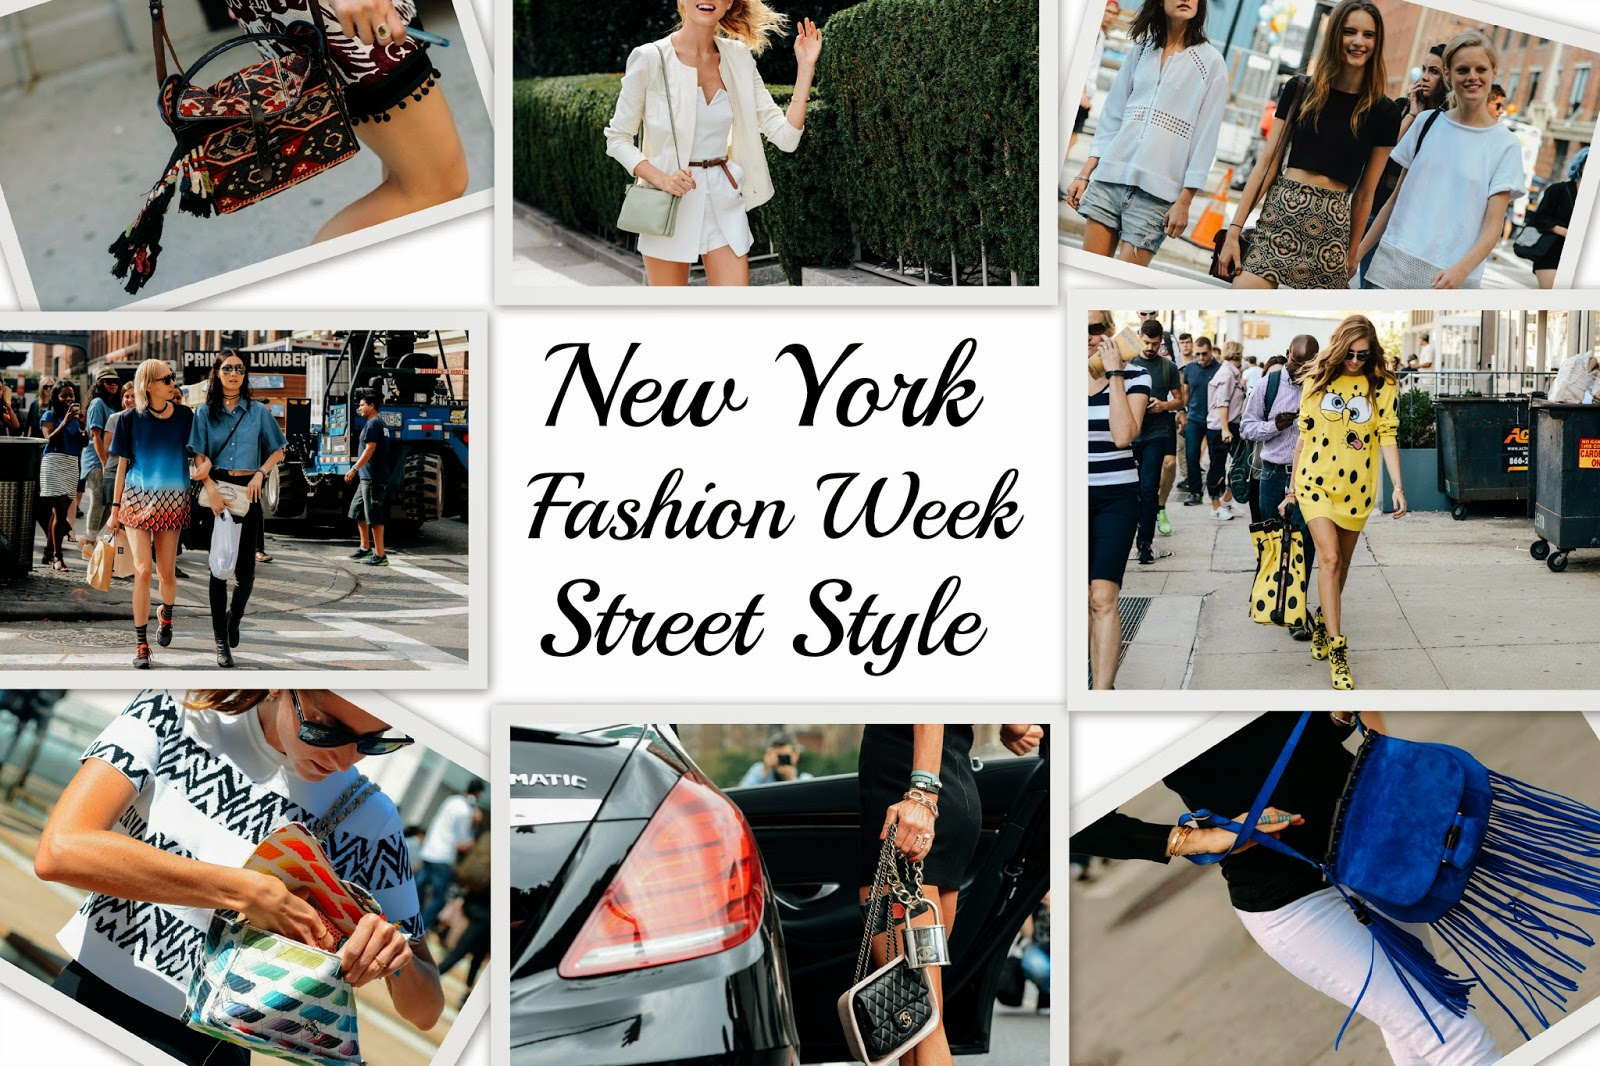 http://www.syriouslyinfashion.com/2014/09/new-york-fashion-week-street-style-show.html